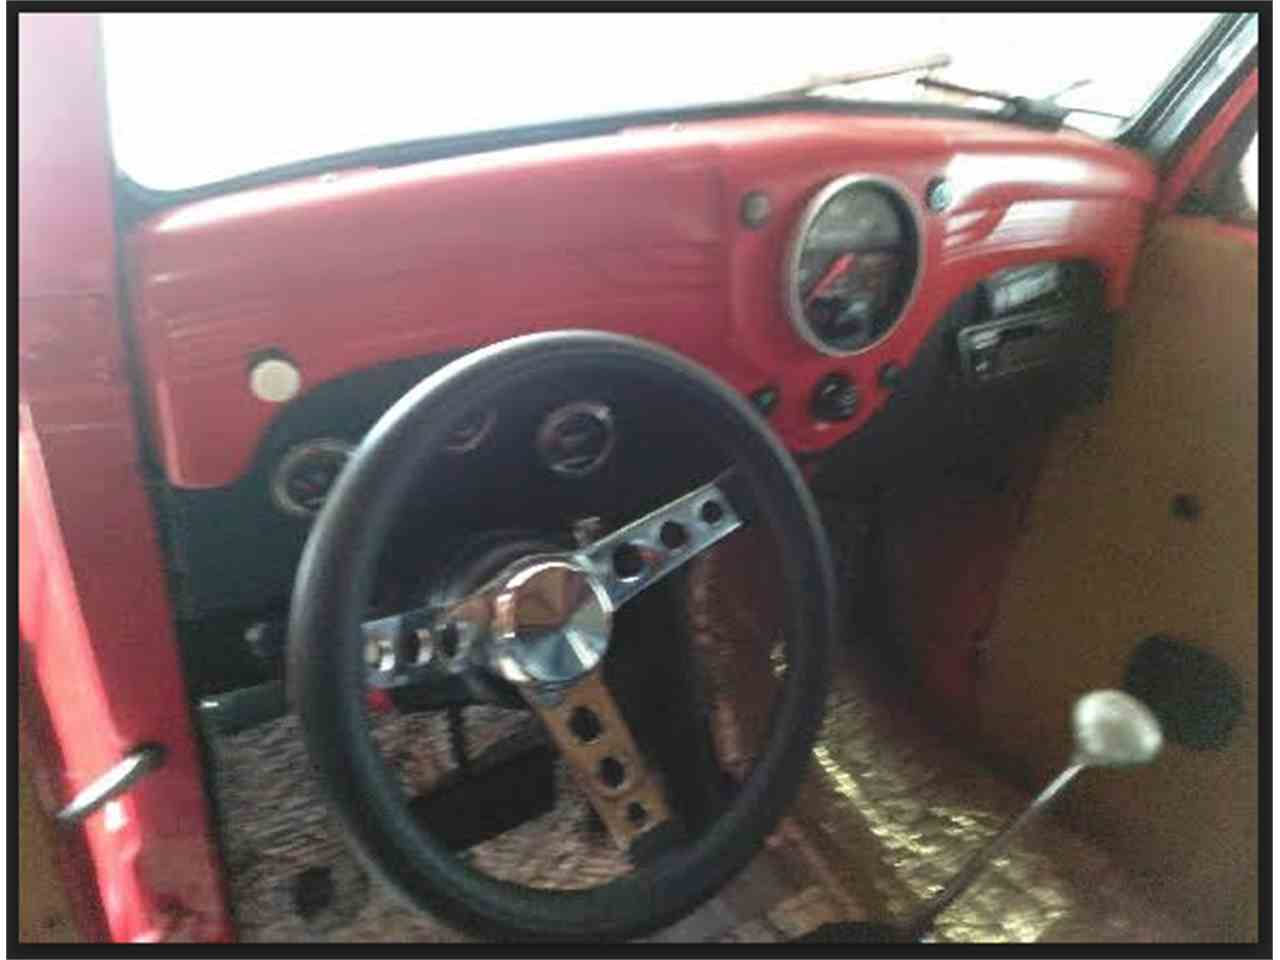 Large Picture of 1948 Anglia Street Rod located in Ontario - $26,000.00 Offered by a Private Seller - JOGM